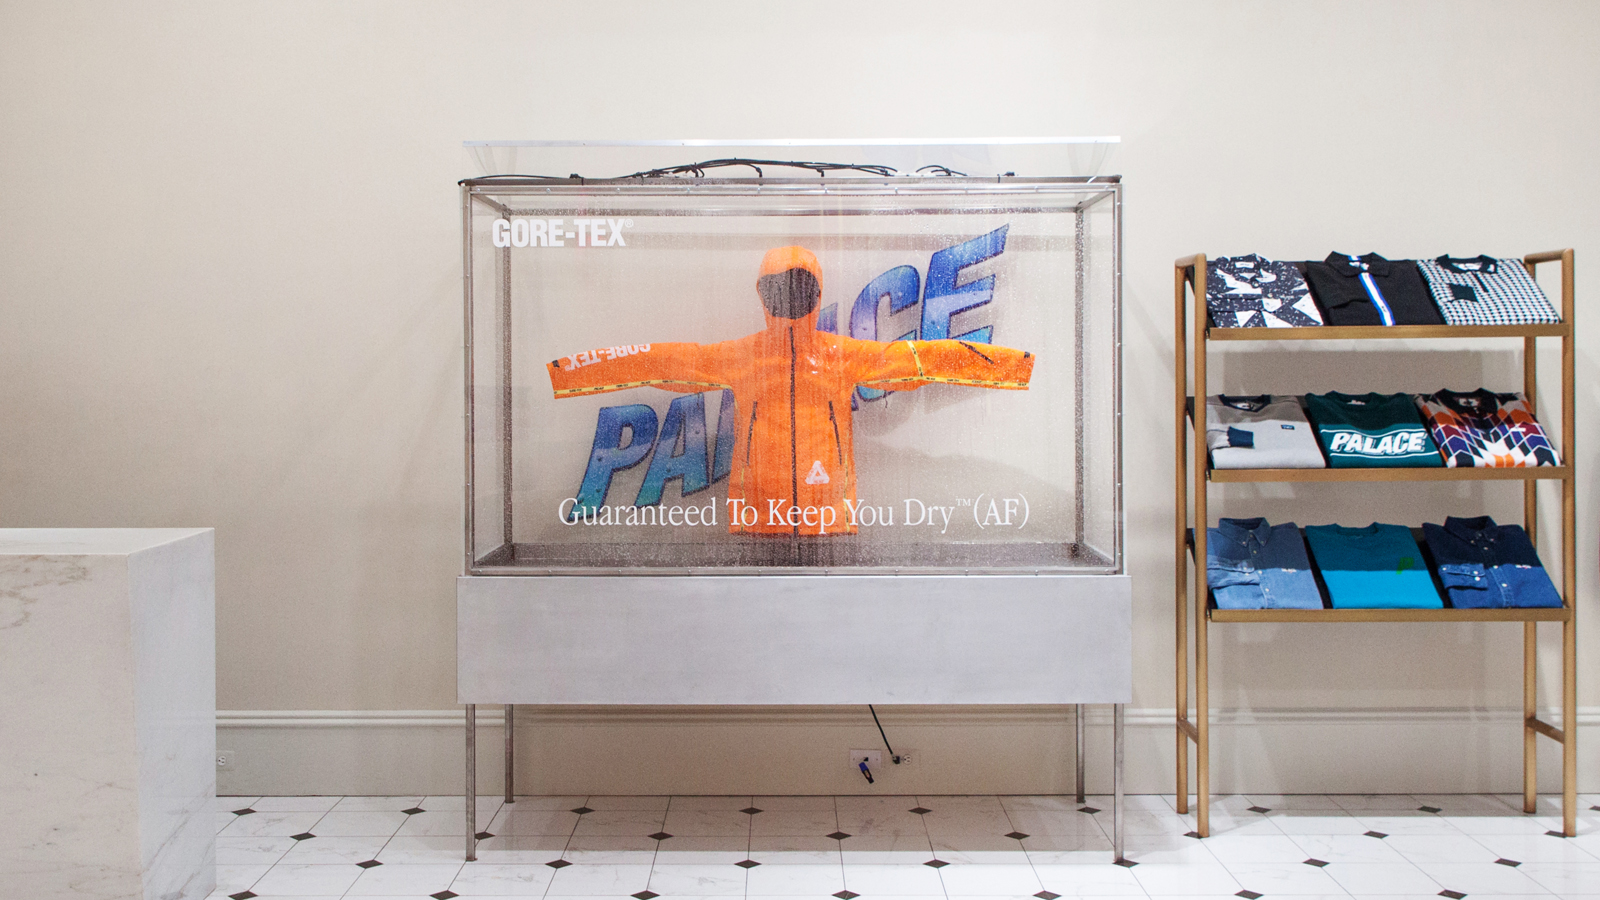 palace-skateboards-pos-activation-nyc-01